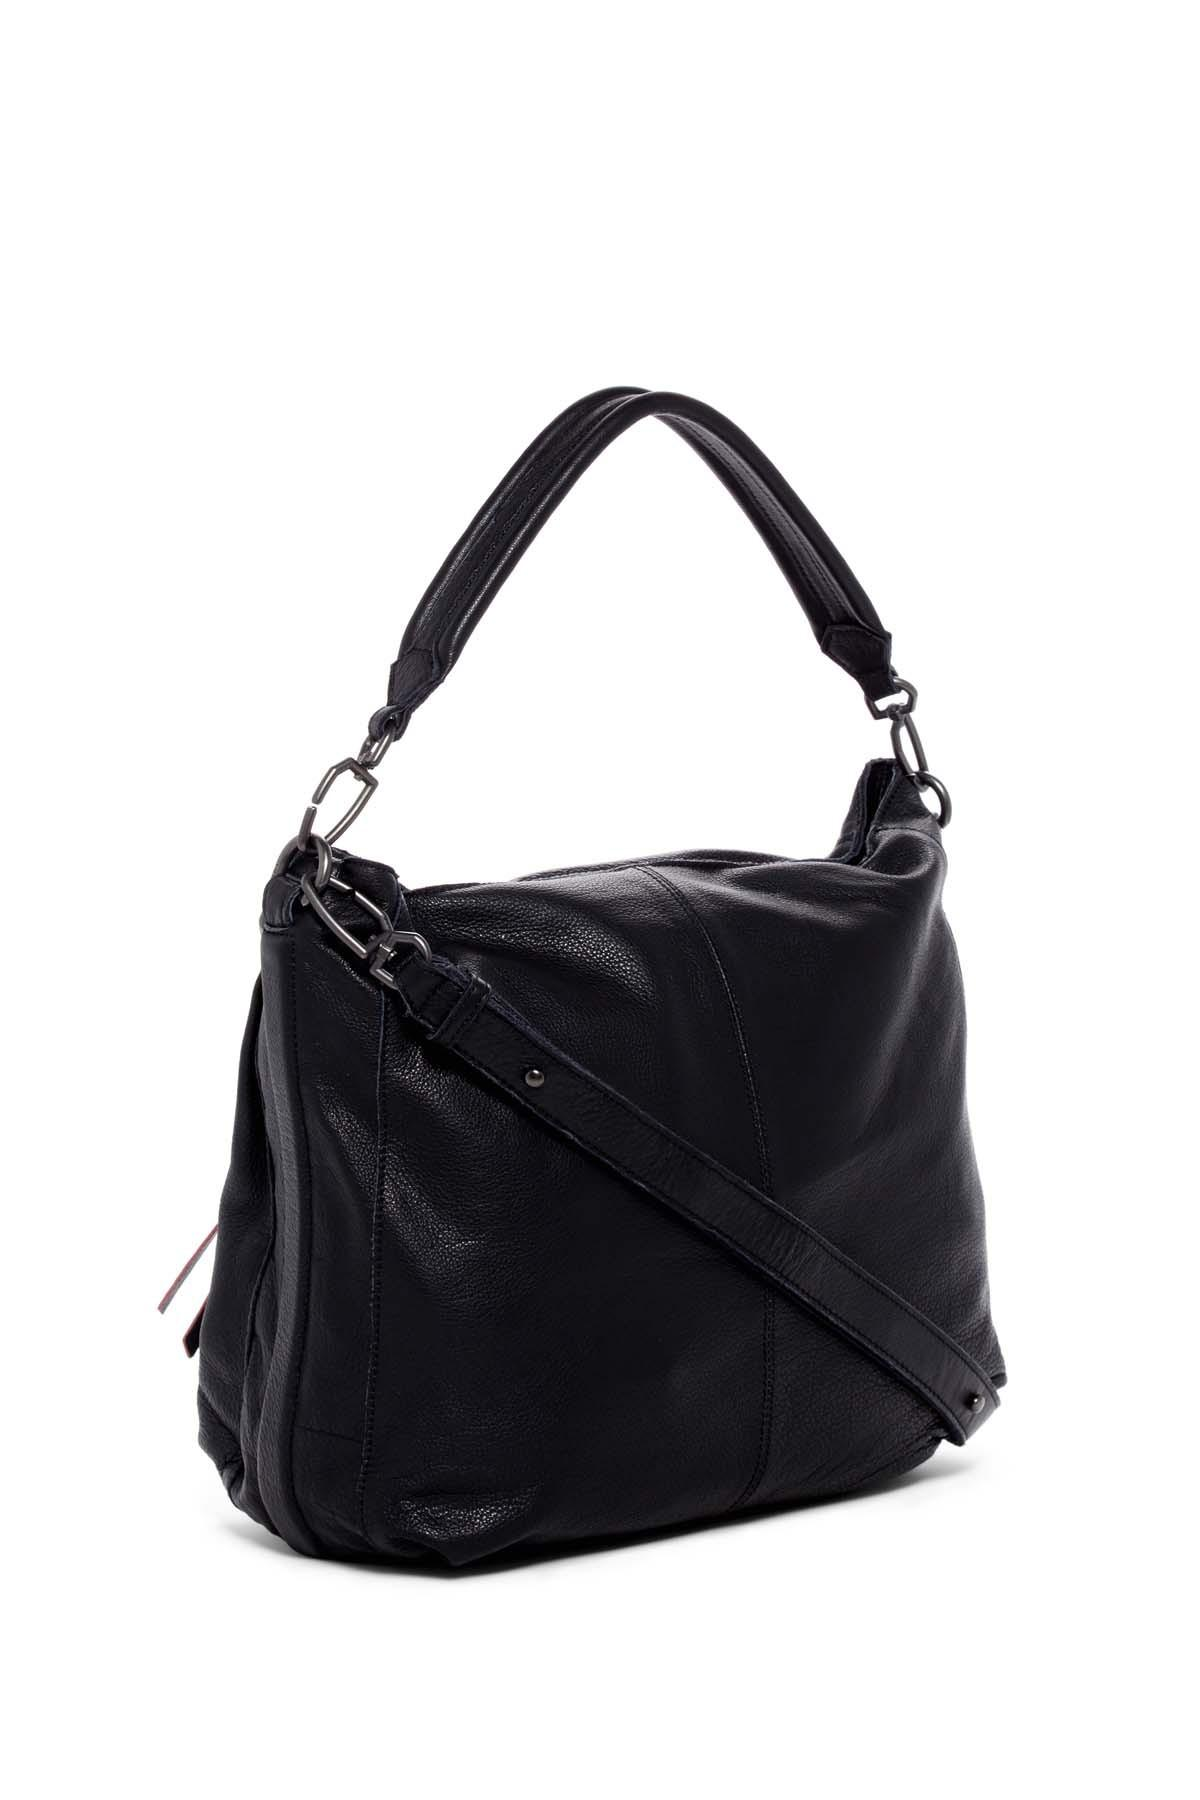 314989c68497 Lyst - Liebeskind Berlin Miramar Sporty Leather Shoulder Bag in Black